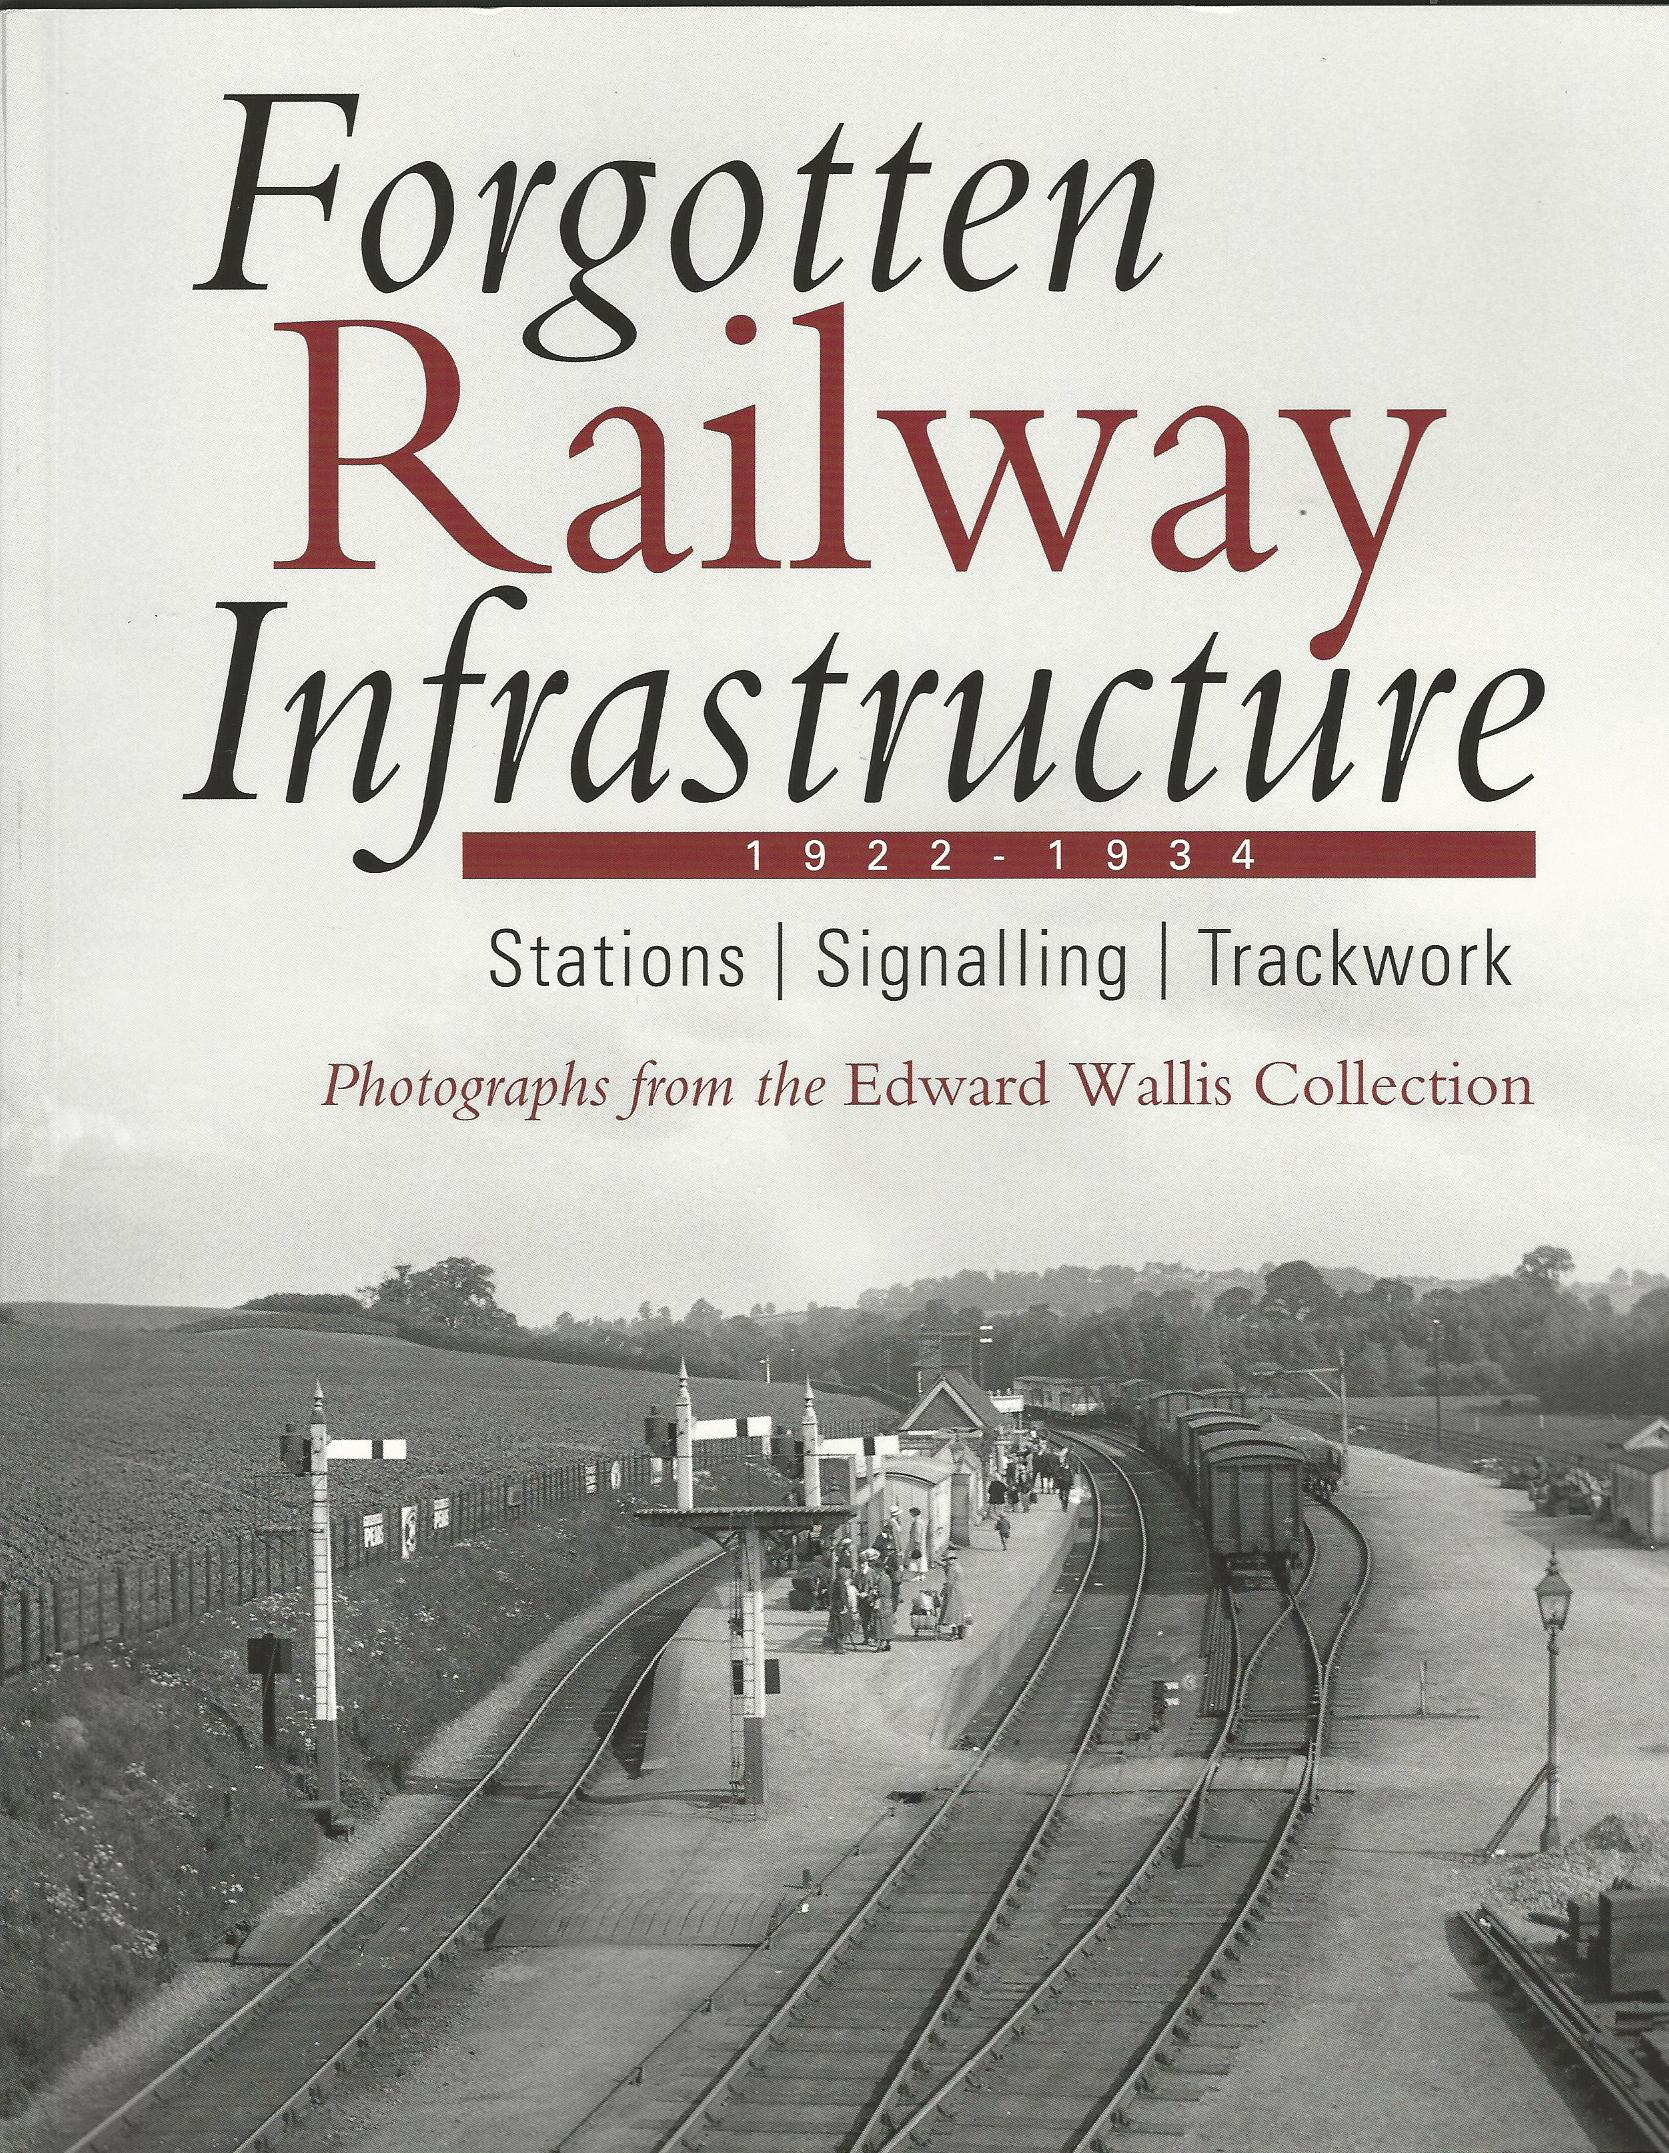 Image for Forgotten Railway Infrastructure 1922 - 1934: Stations, Signalling, Trackwork